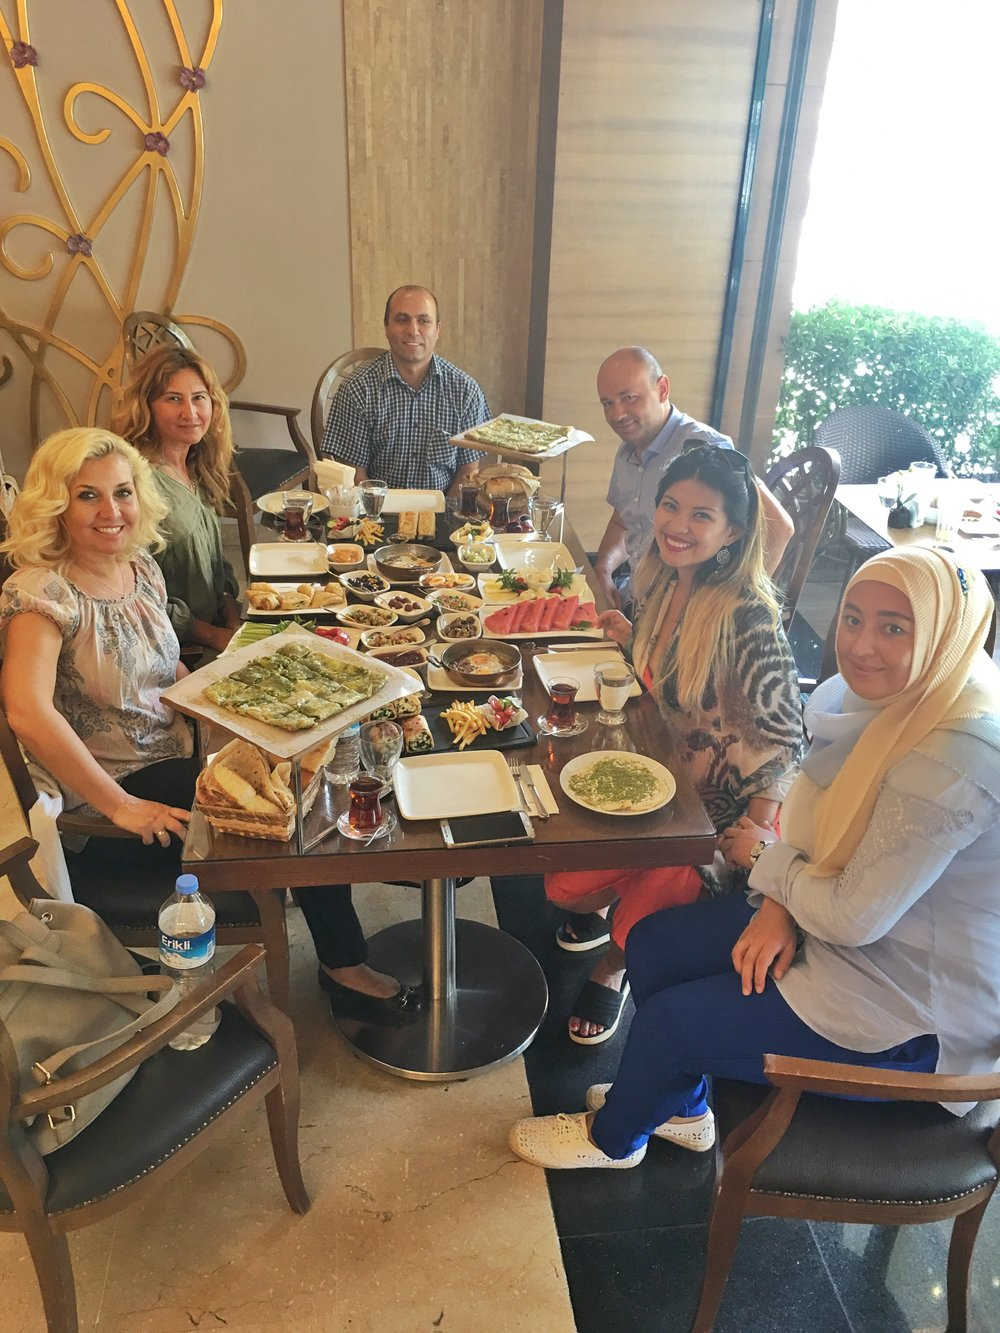 Invited on a Culinary Experience Press Trip in Gaziantep, Turkey